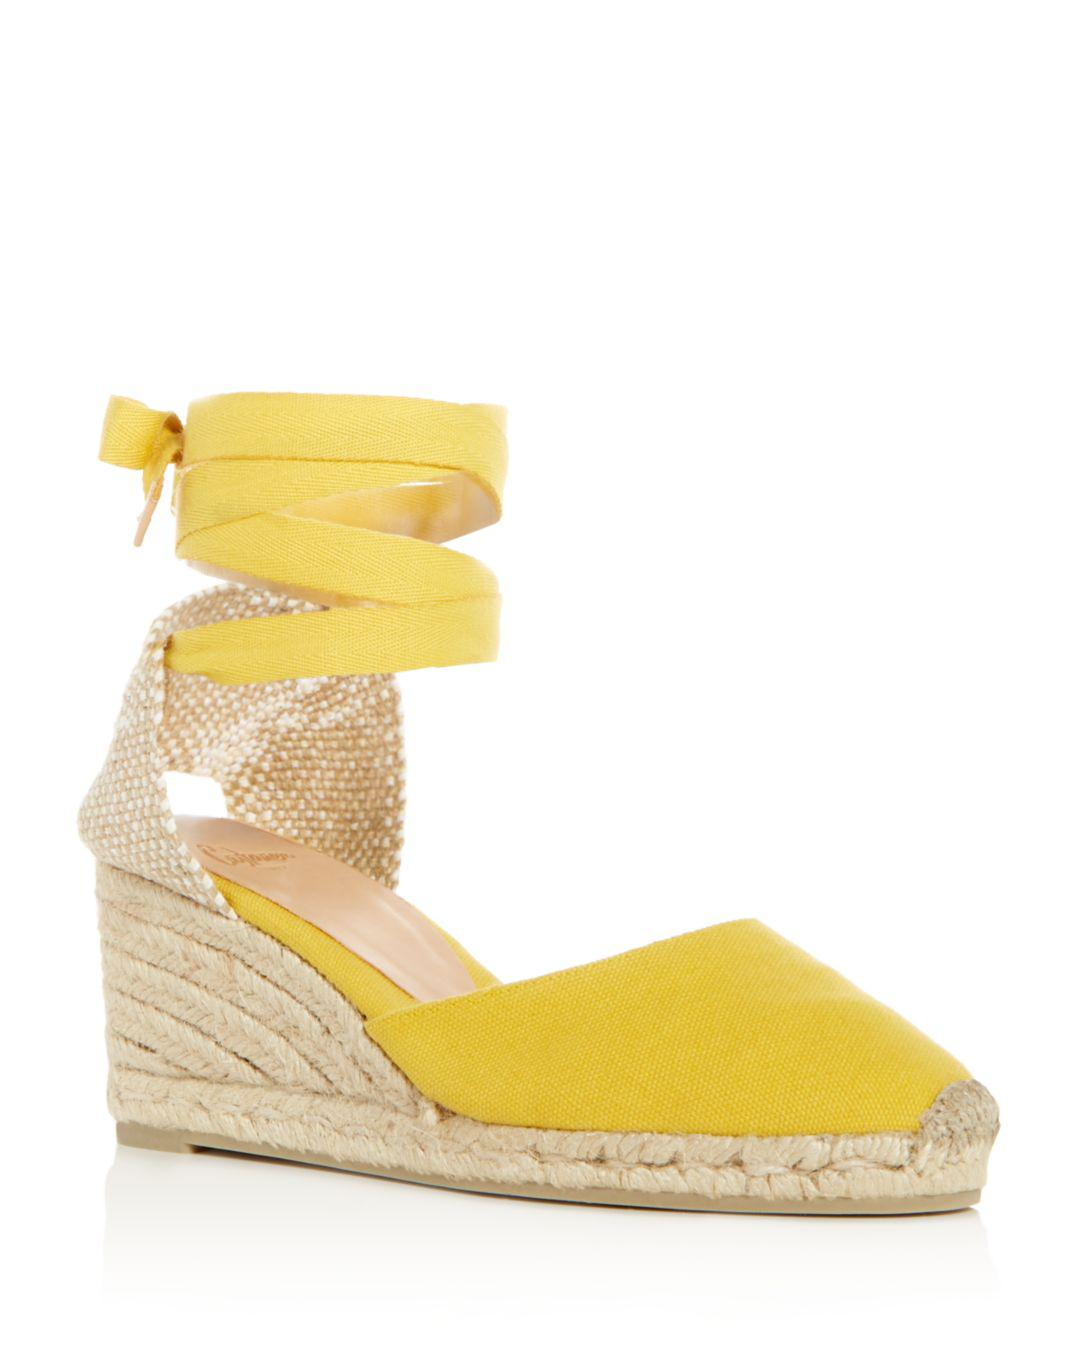 d311a89674d6 Castaner Women's Carina Ankle Tie Espadrille Wedge Sandals in Yellow ...